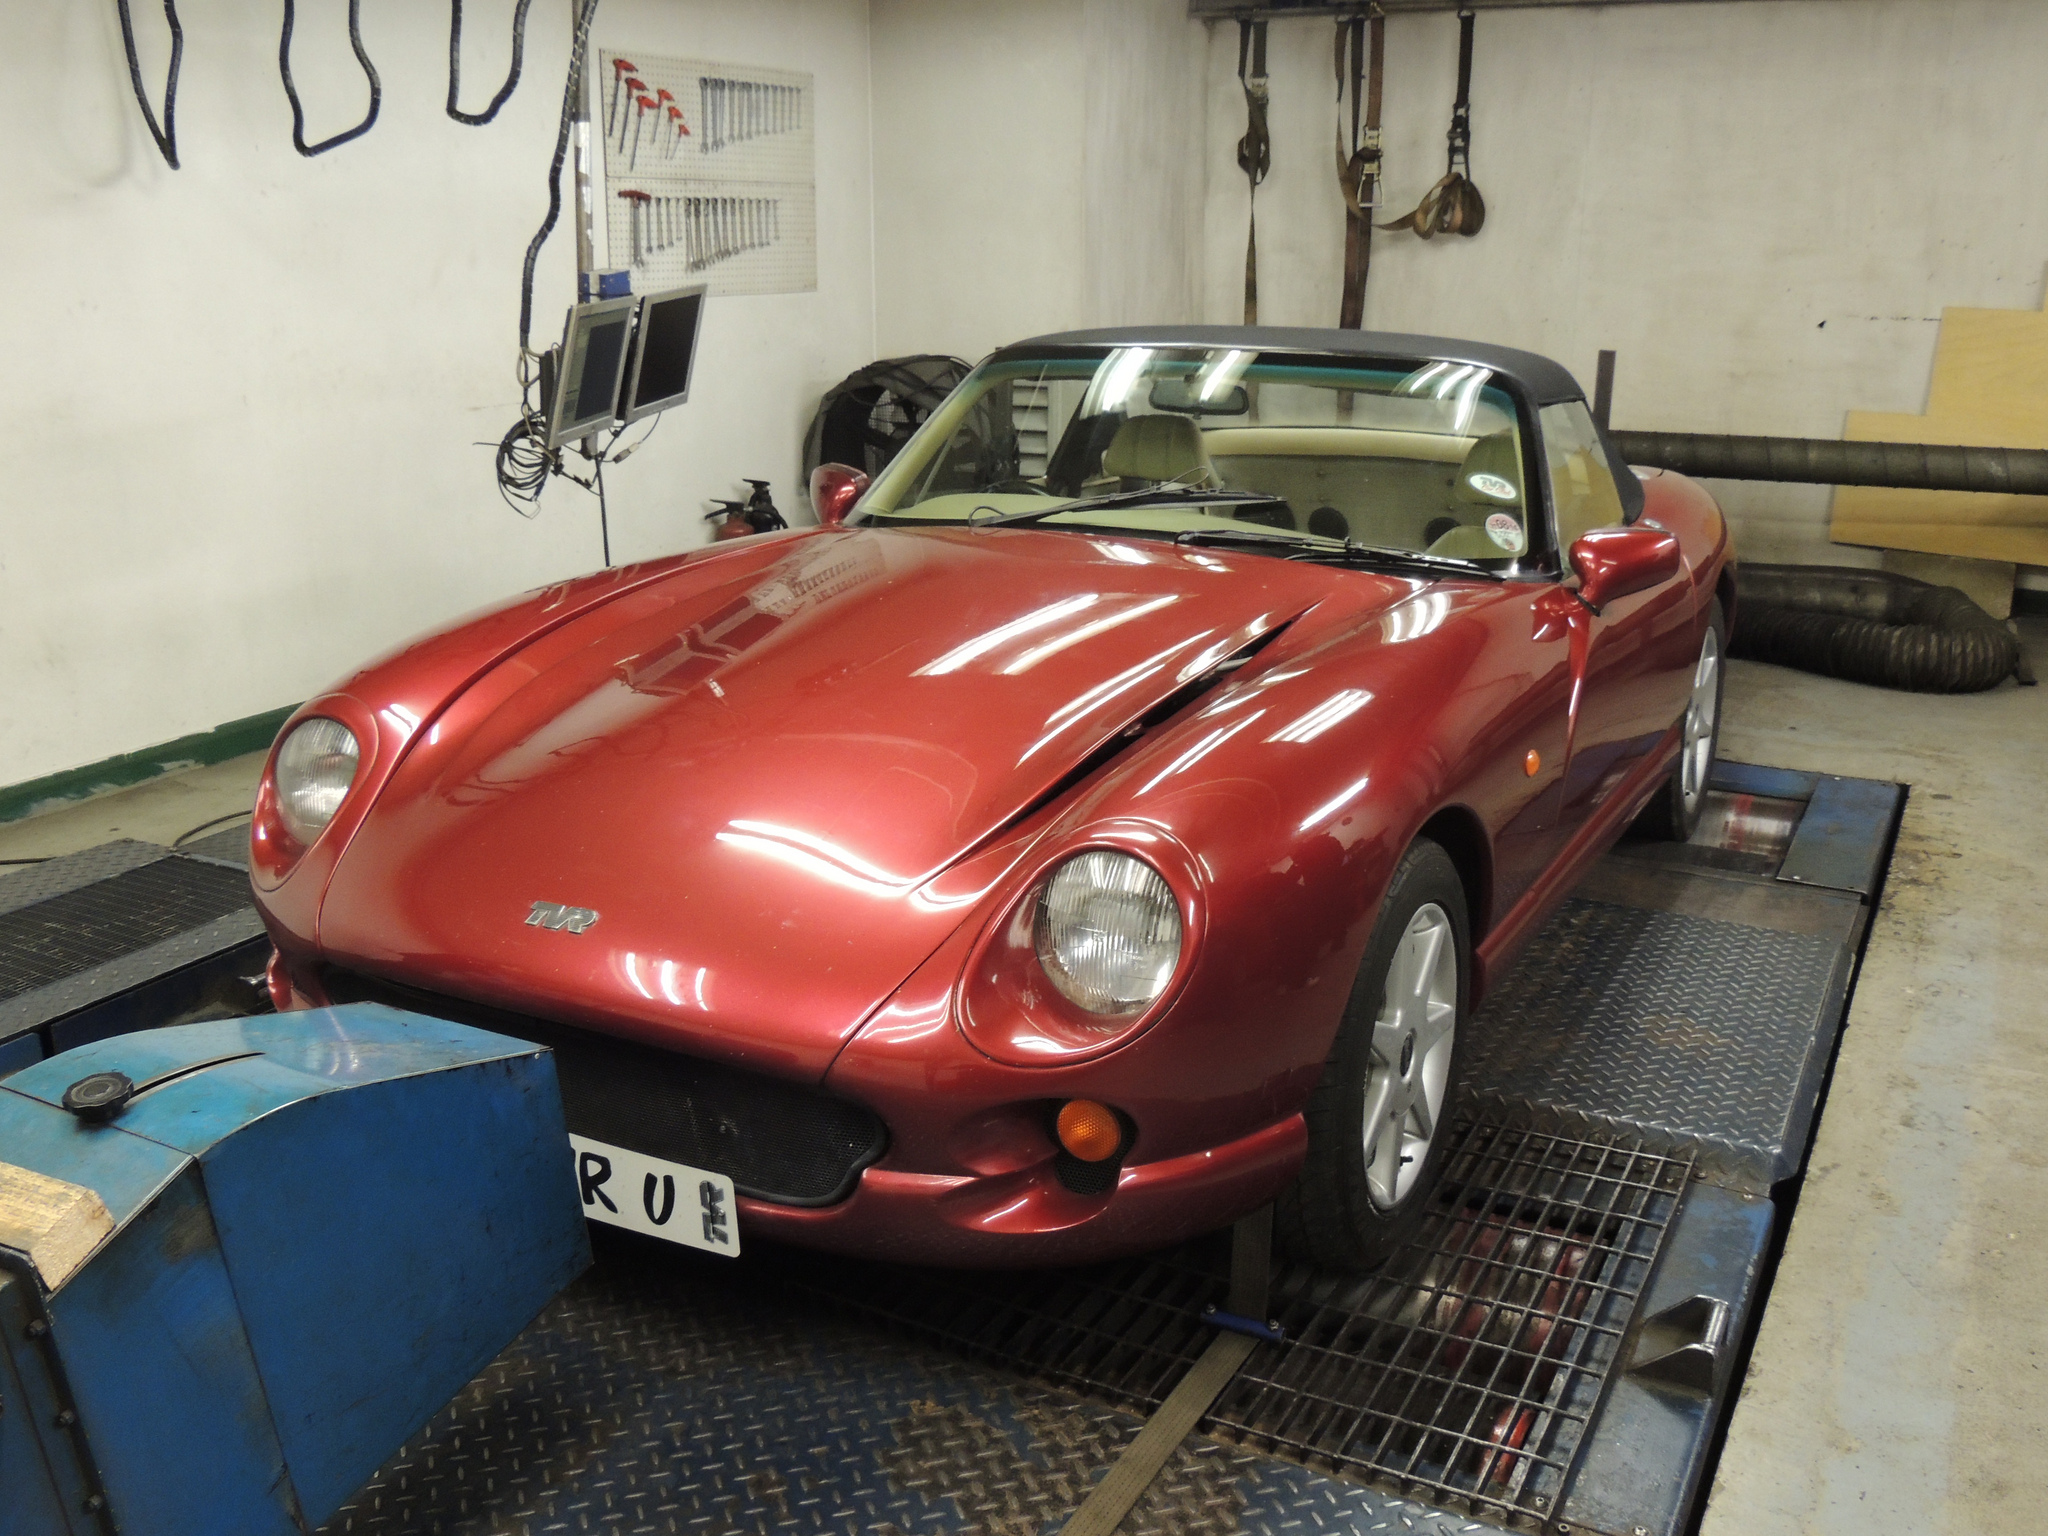 rollingroad Inspiring Tvr Griffith Wheel Nut torque Cars Trend